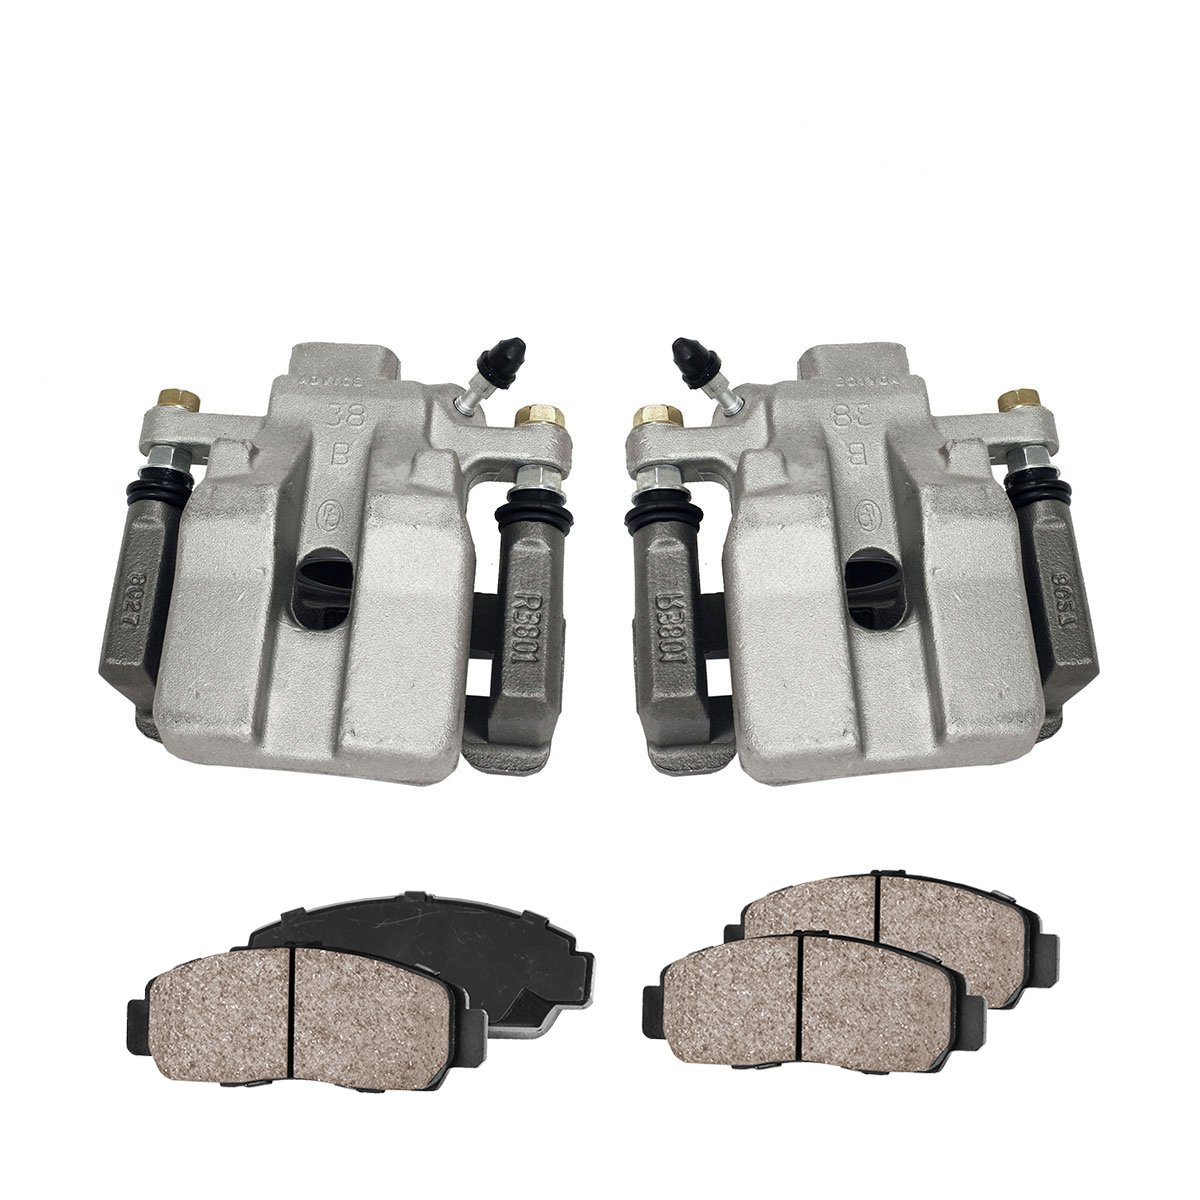 Callahan CCK03395 REAR Premium Loaded OE Caliper Pair + Ceramic Brake Pads + Hardware Kit Callahan Brake Parts